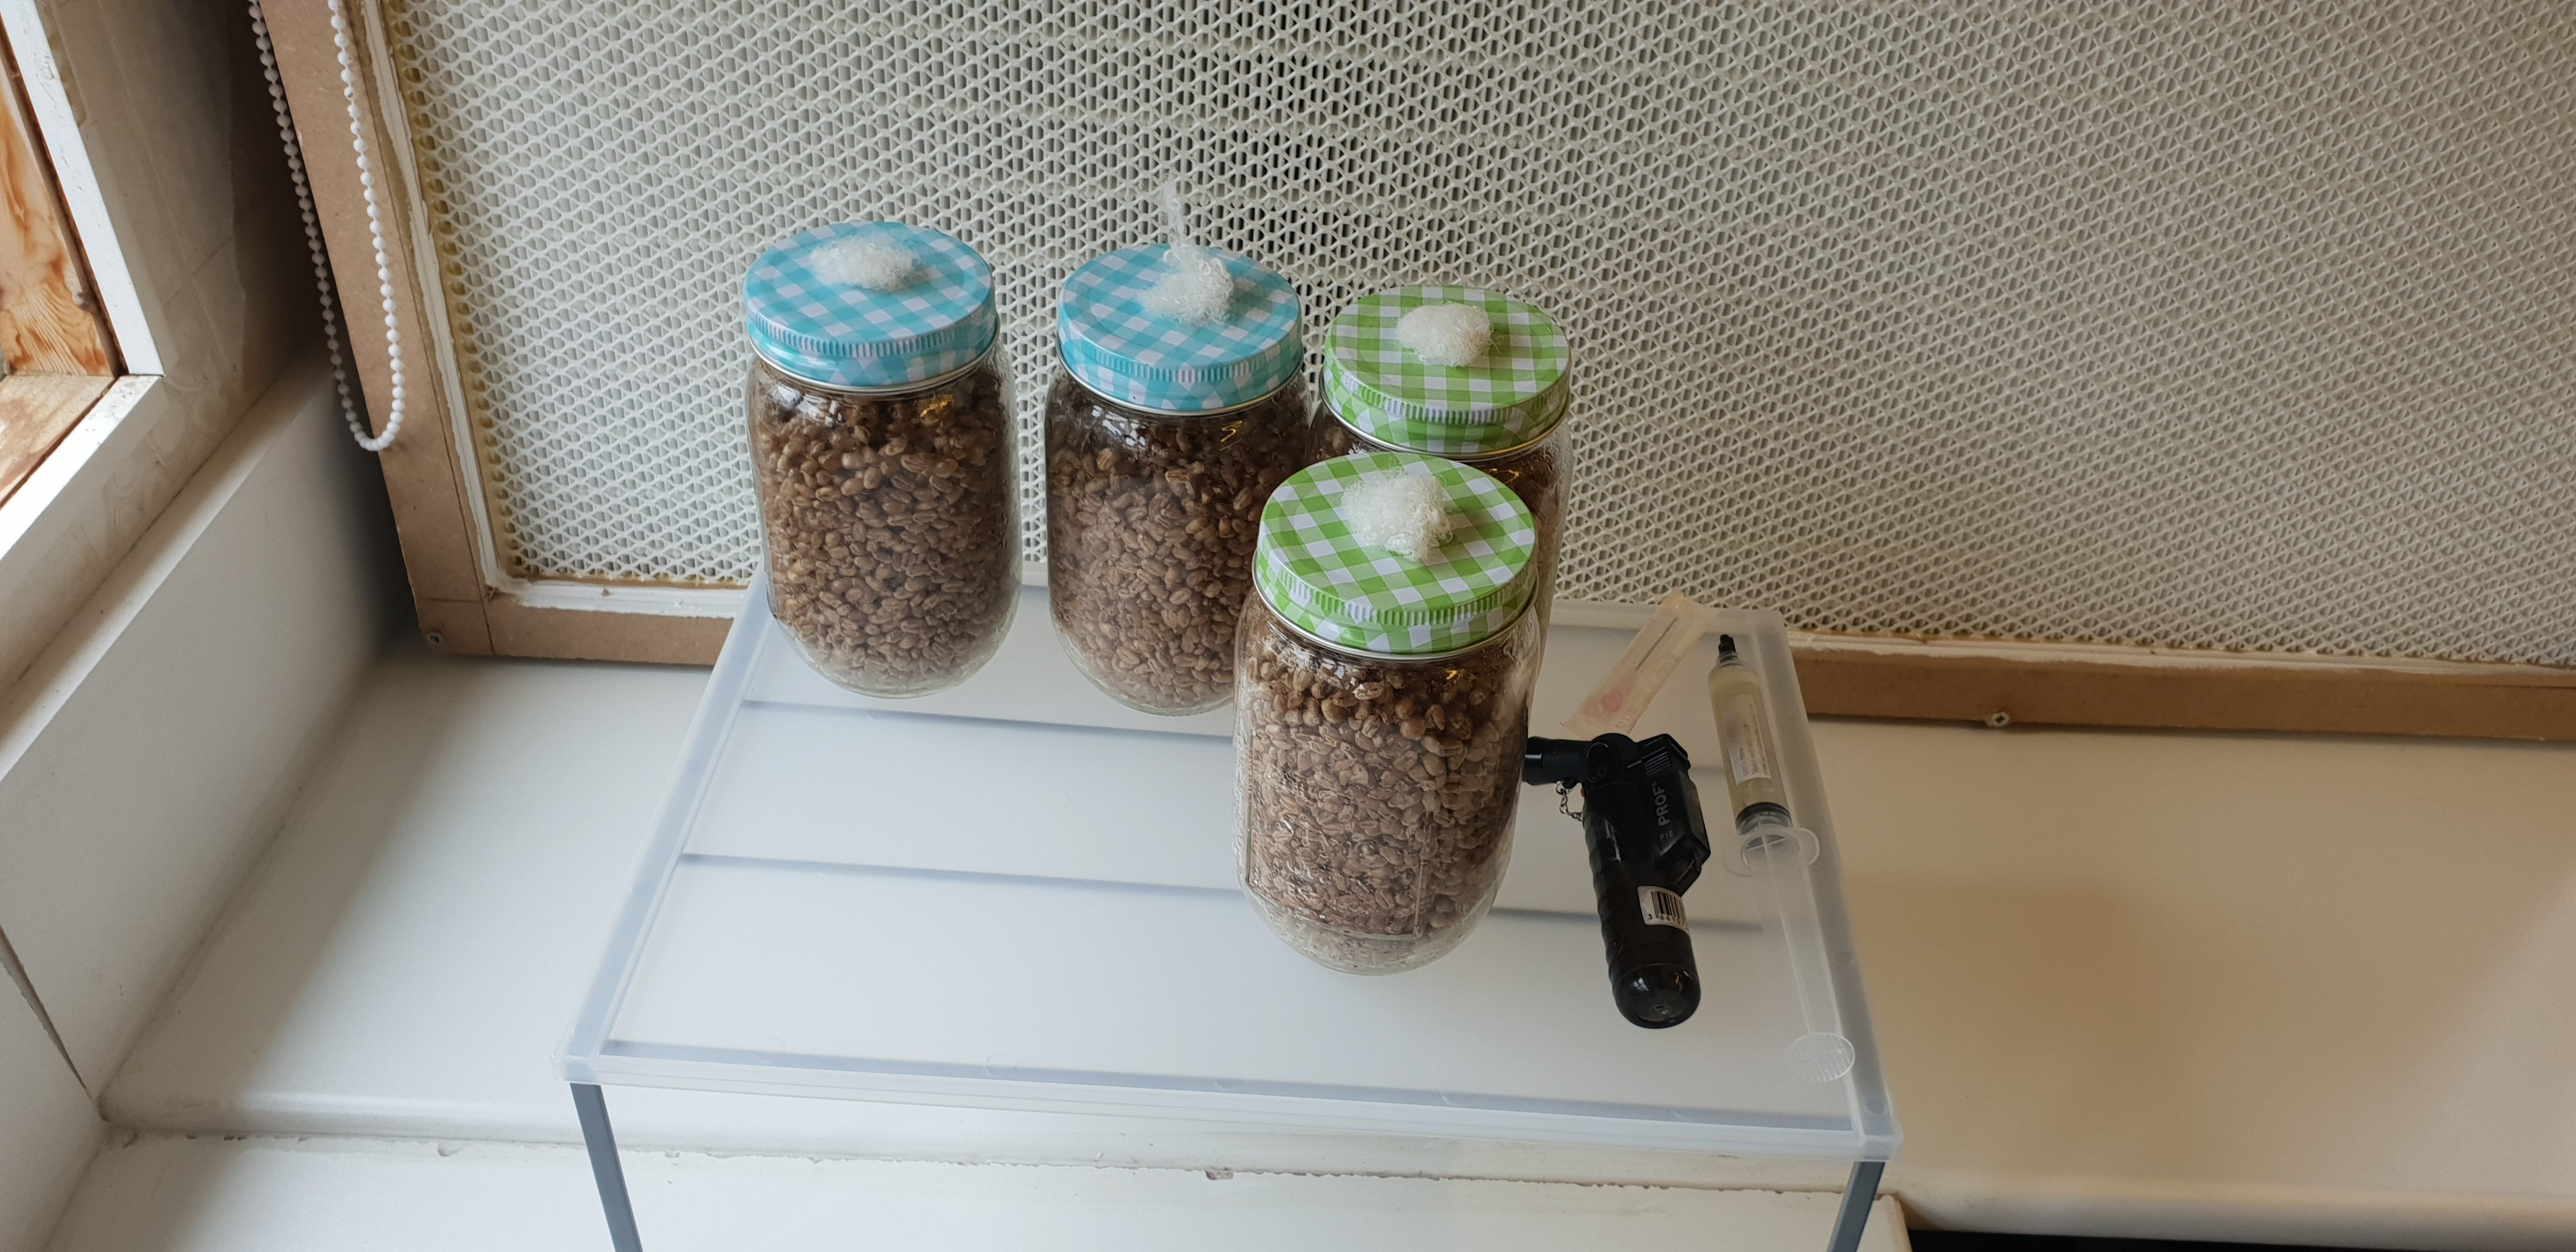 Jars Infront Of HEPA Filter With Lions Mane Liquid Culture | Archer's Mushrooms Blog About Using Wilko Jars To Inoculate Mushroom Grain